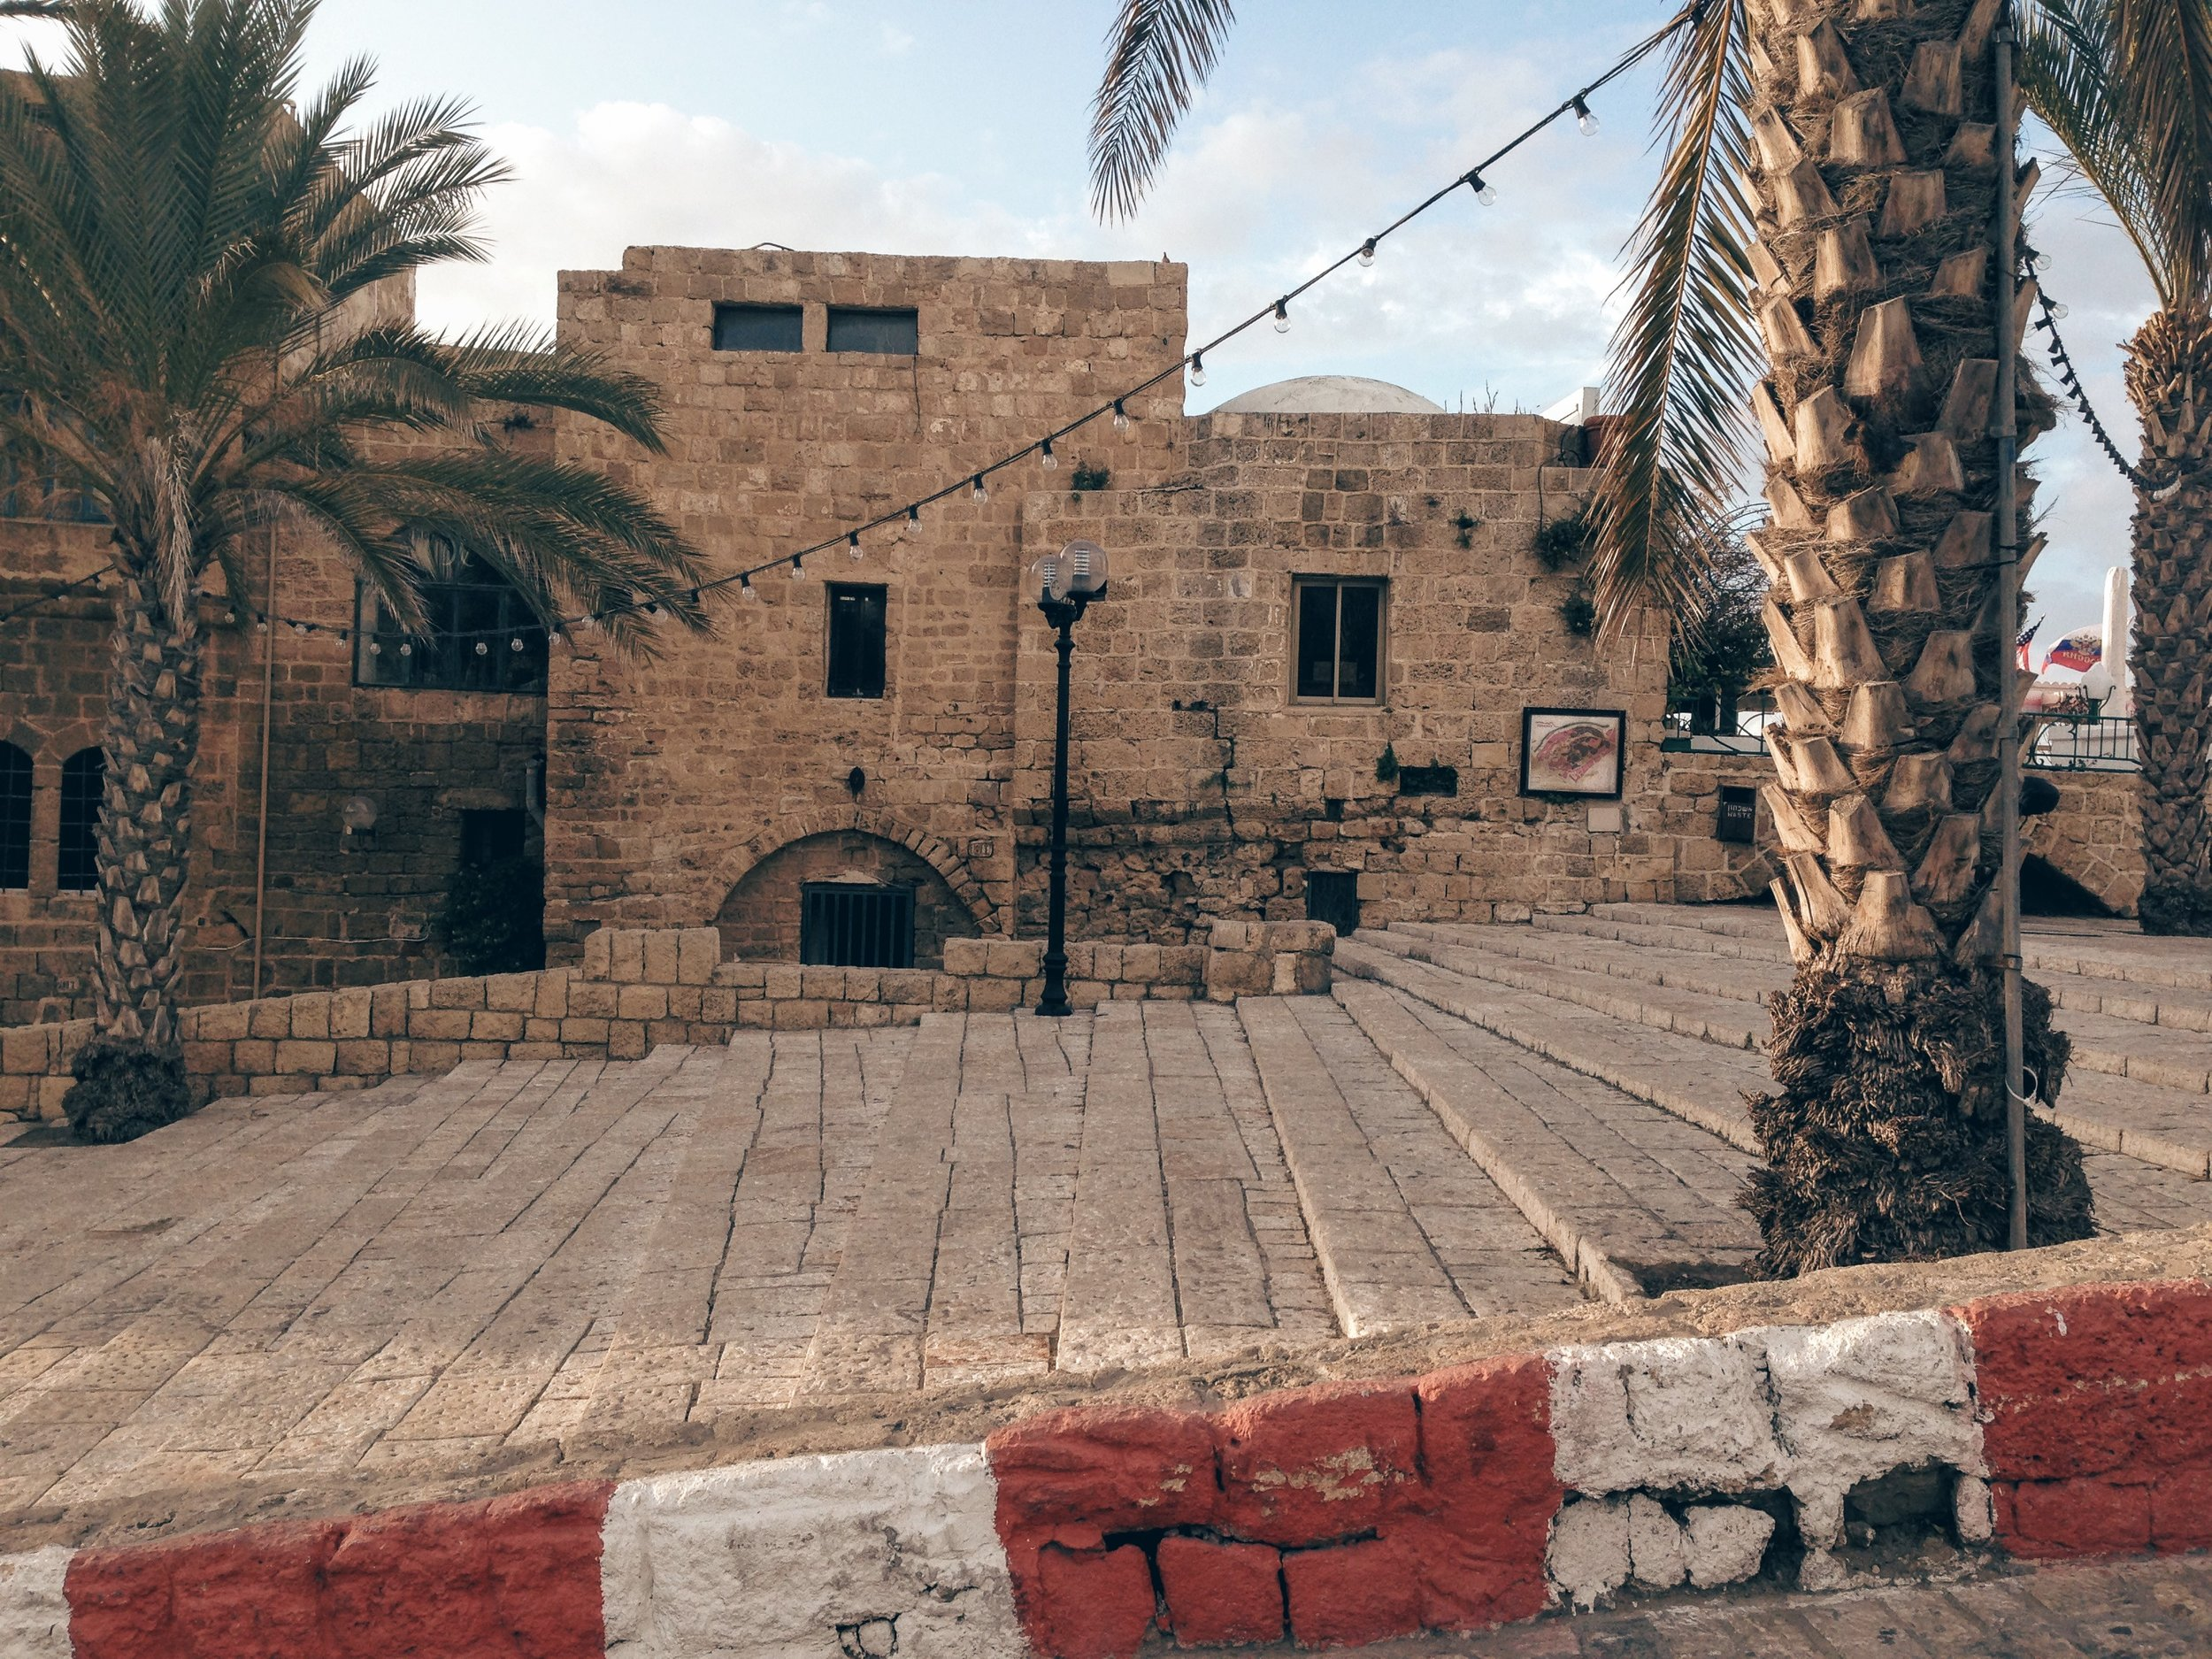 A stroll around the old city of Jaffa